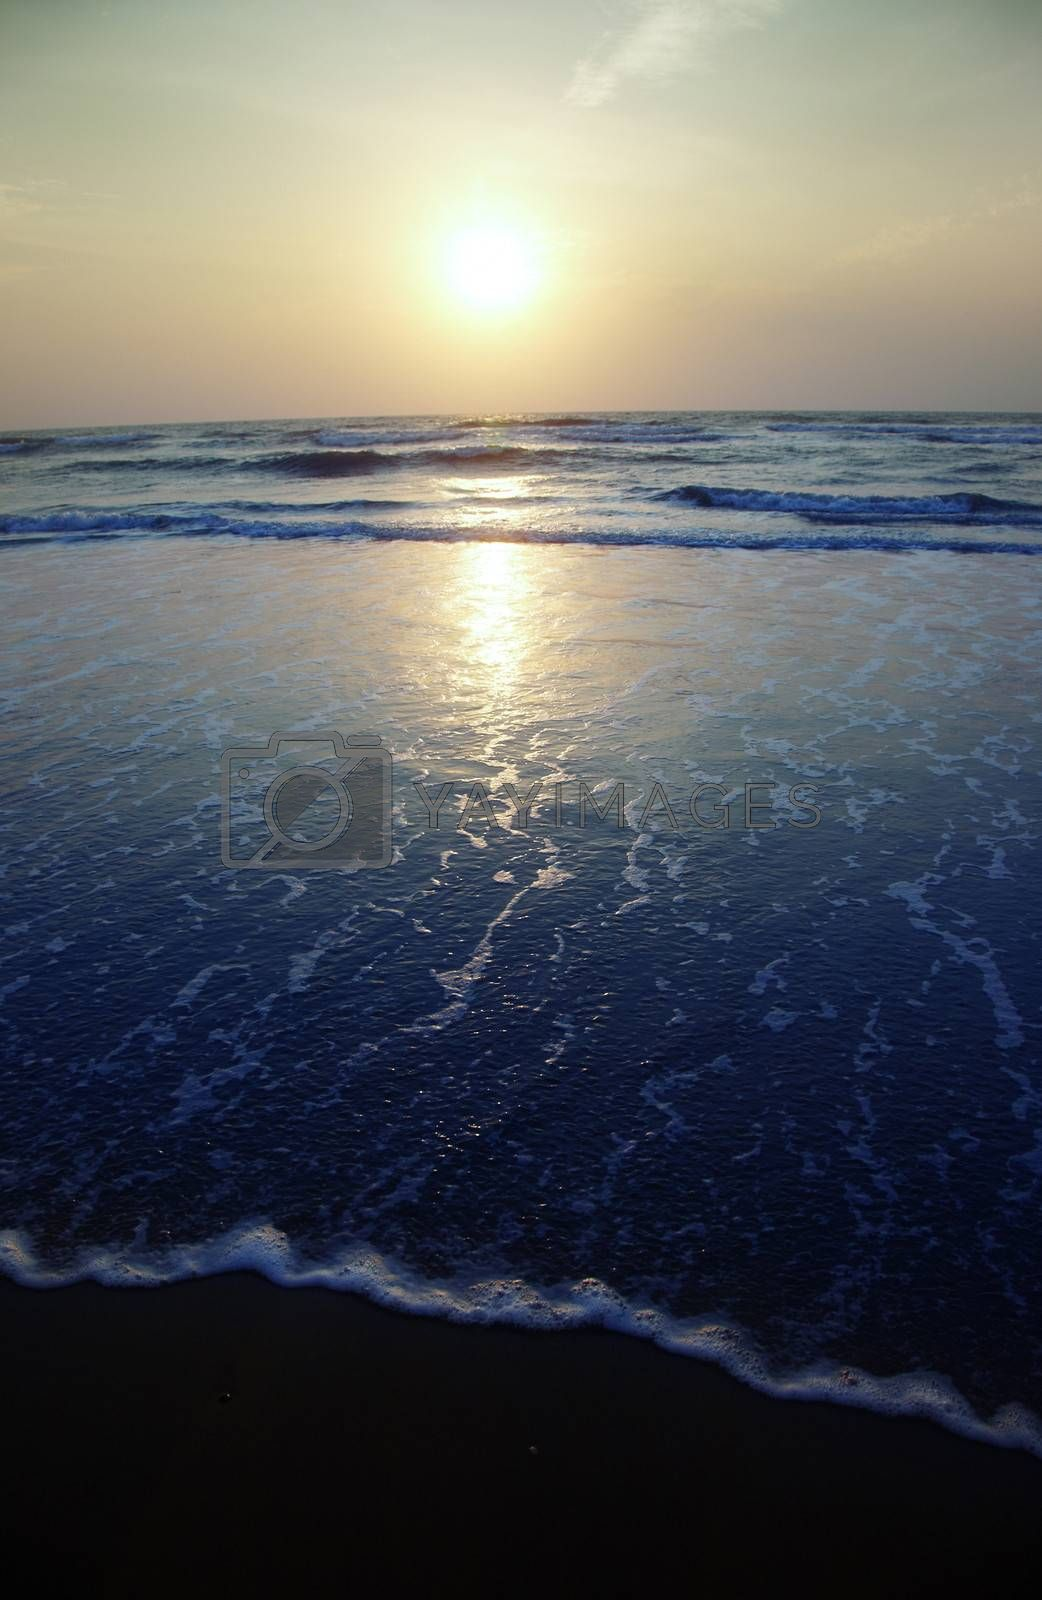 Seaside with waves during sunset. Vertical photo